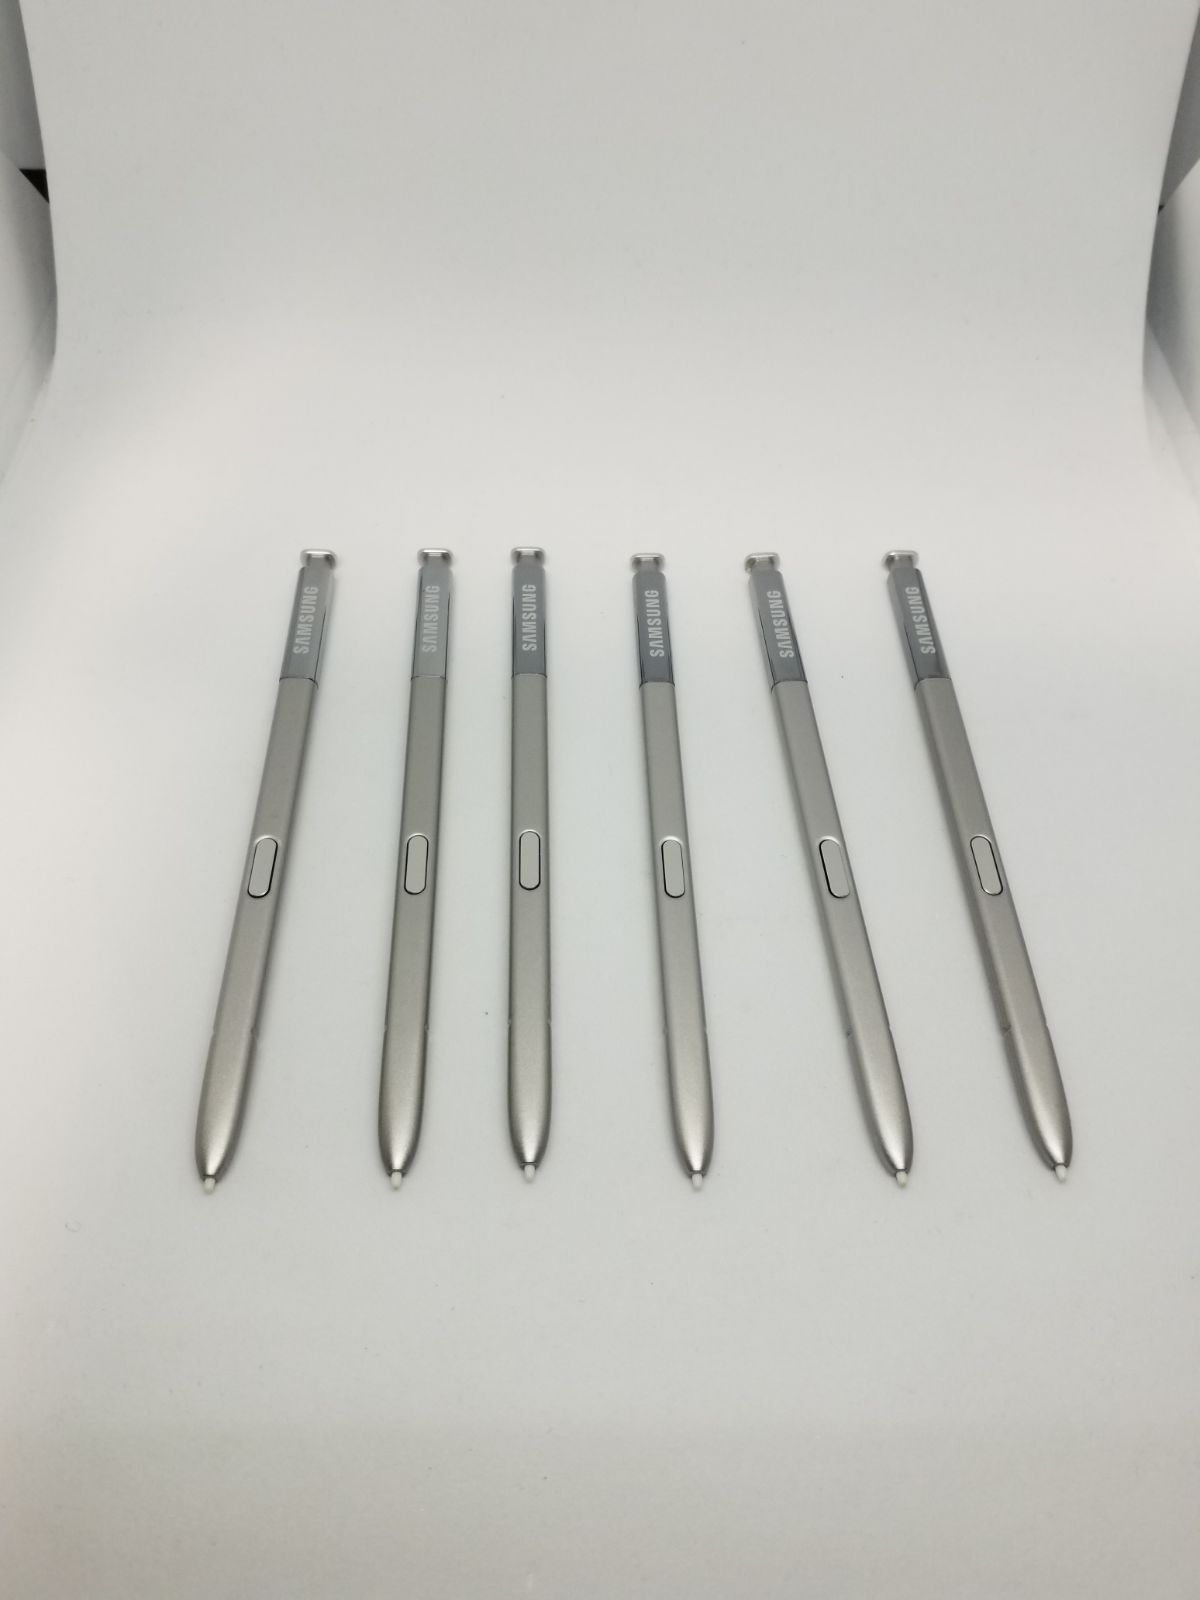 1 spen for Galaxy Note 8